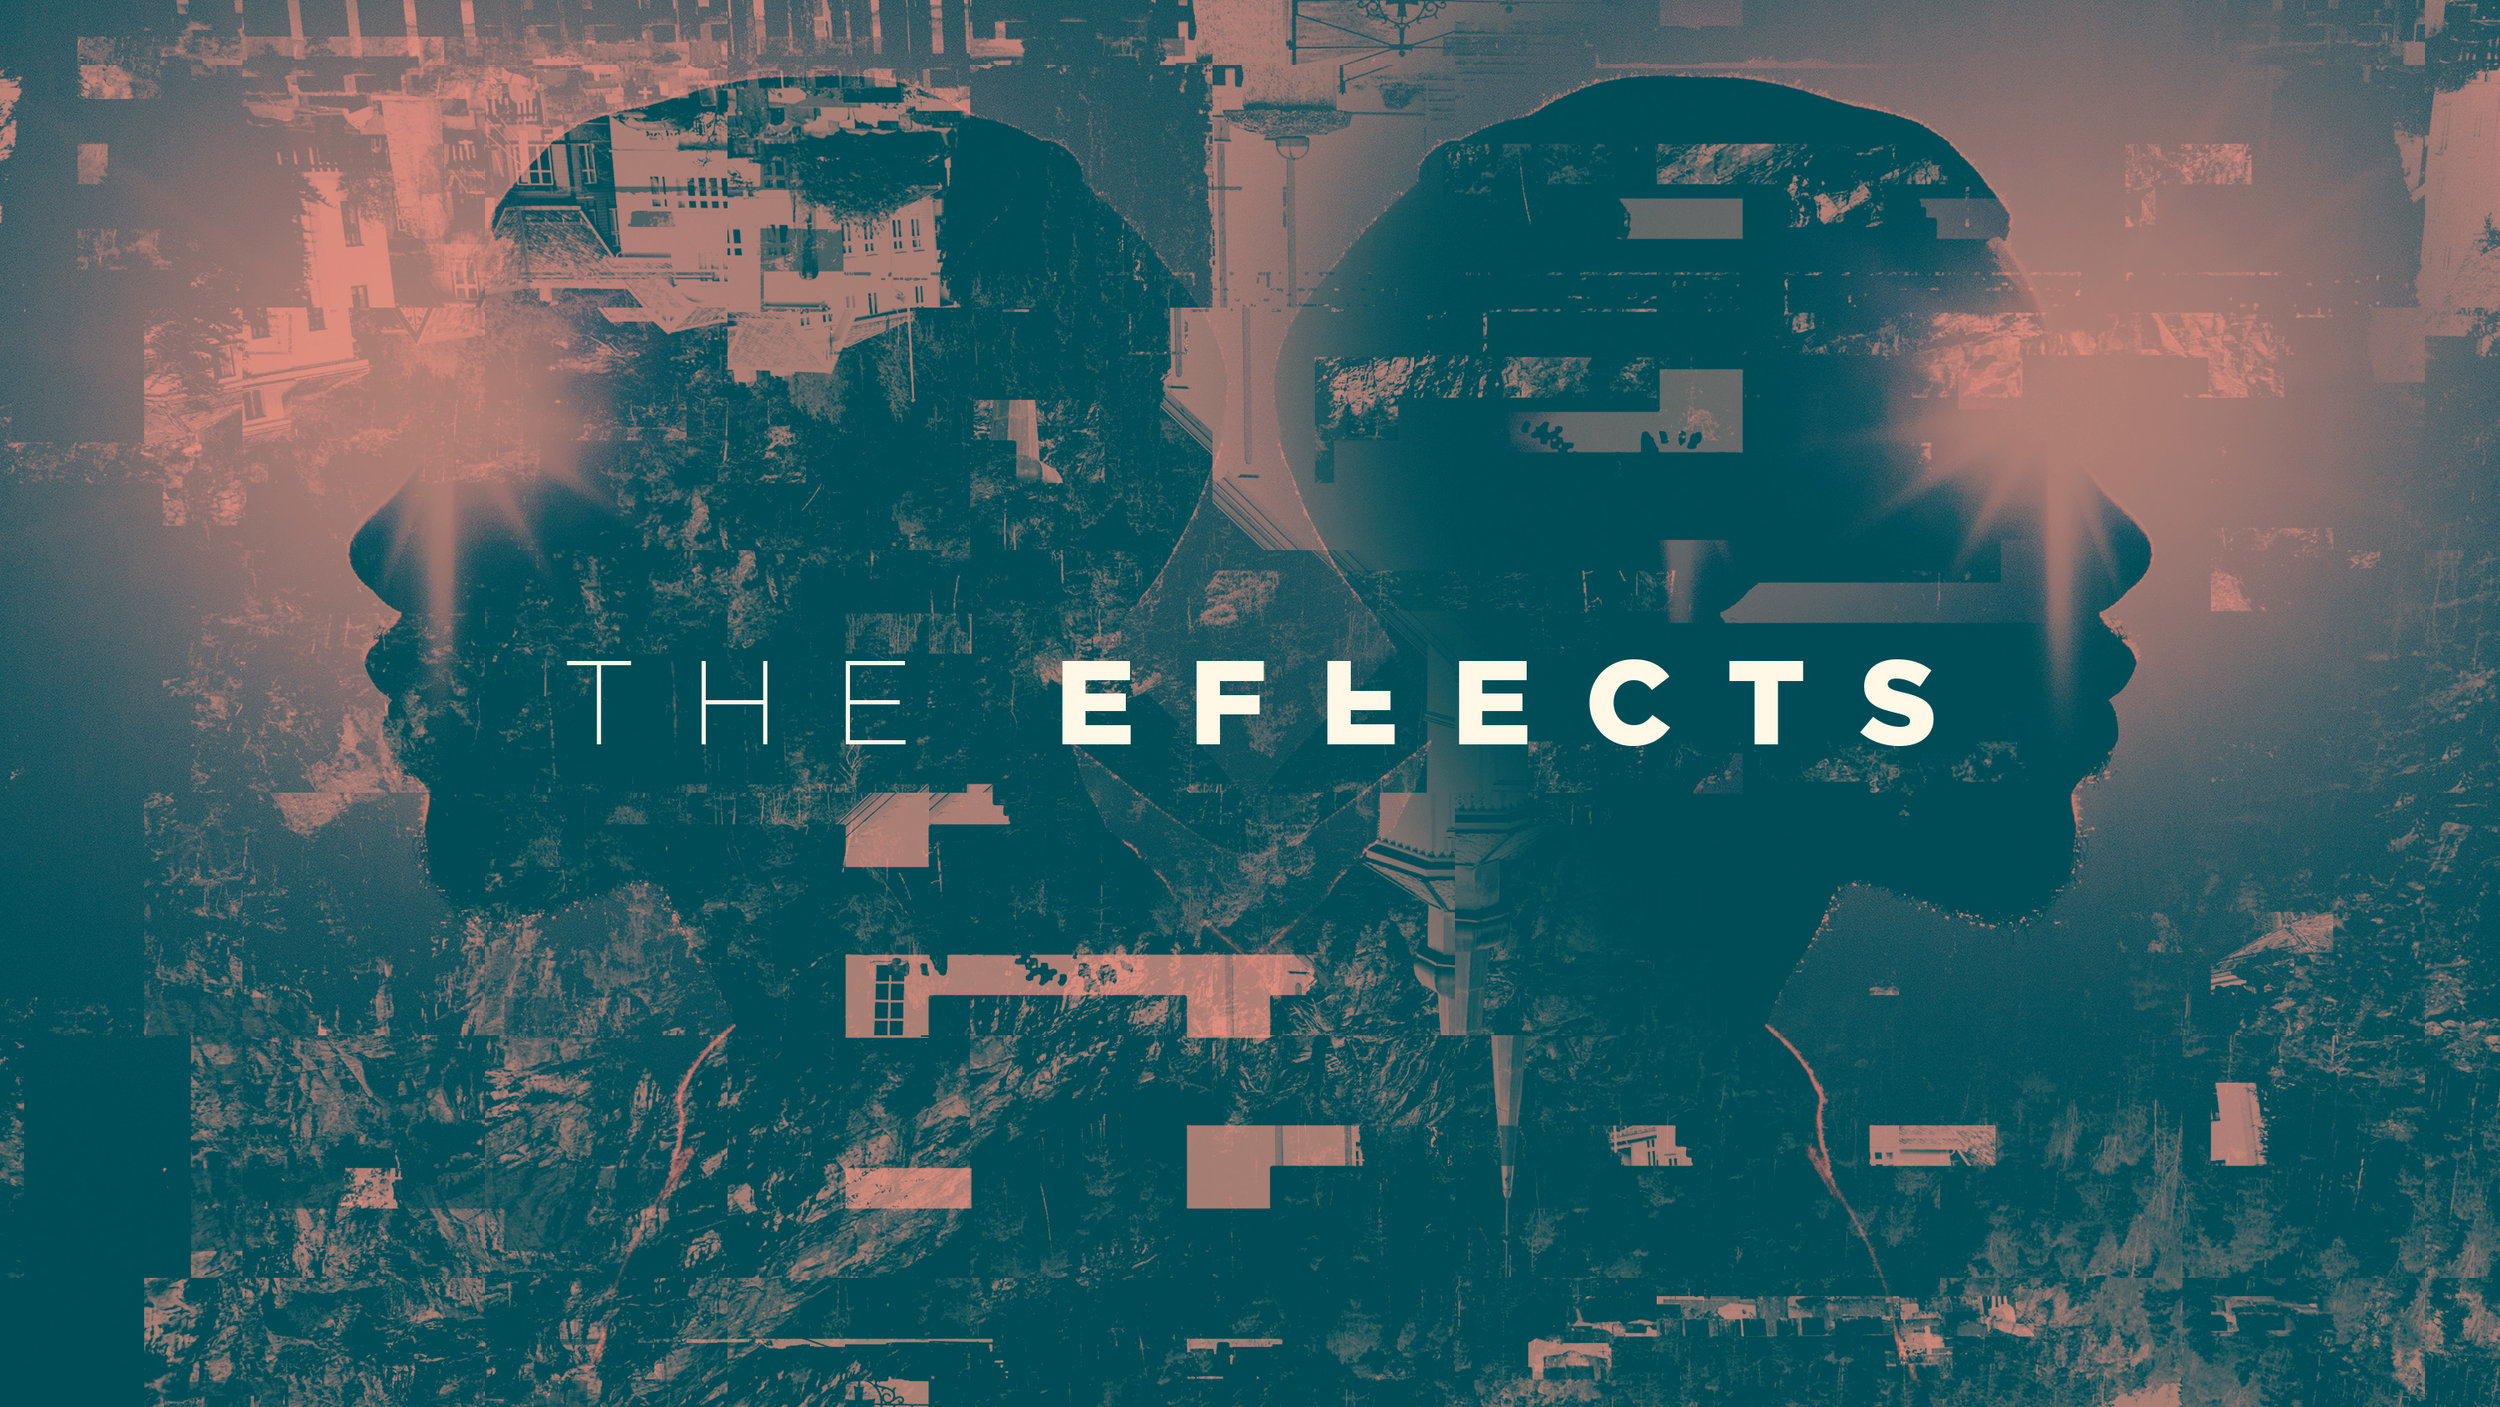 THE EFFECTS_MAIN GRAPHIC.jpg